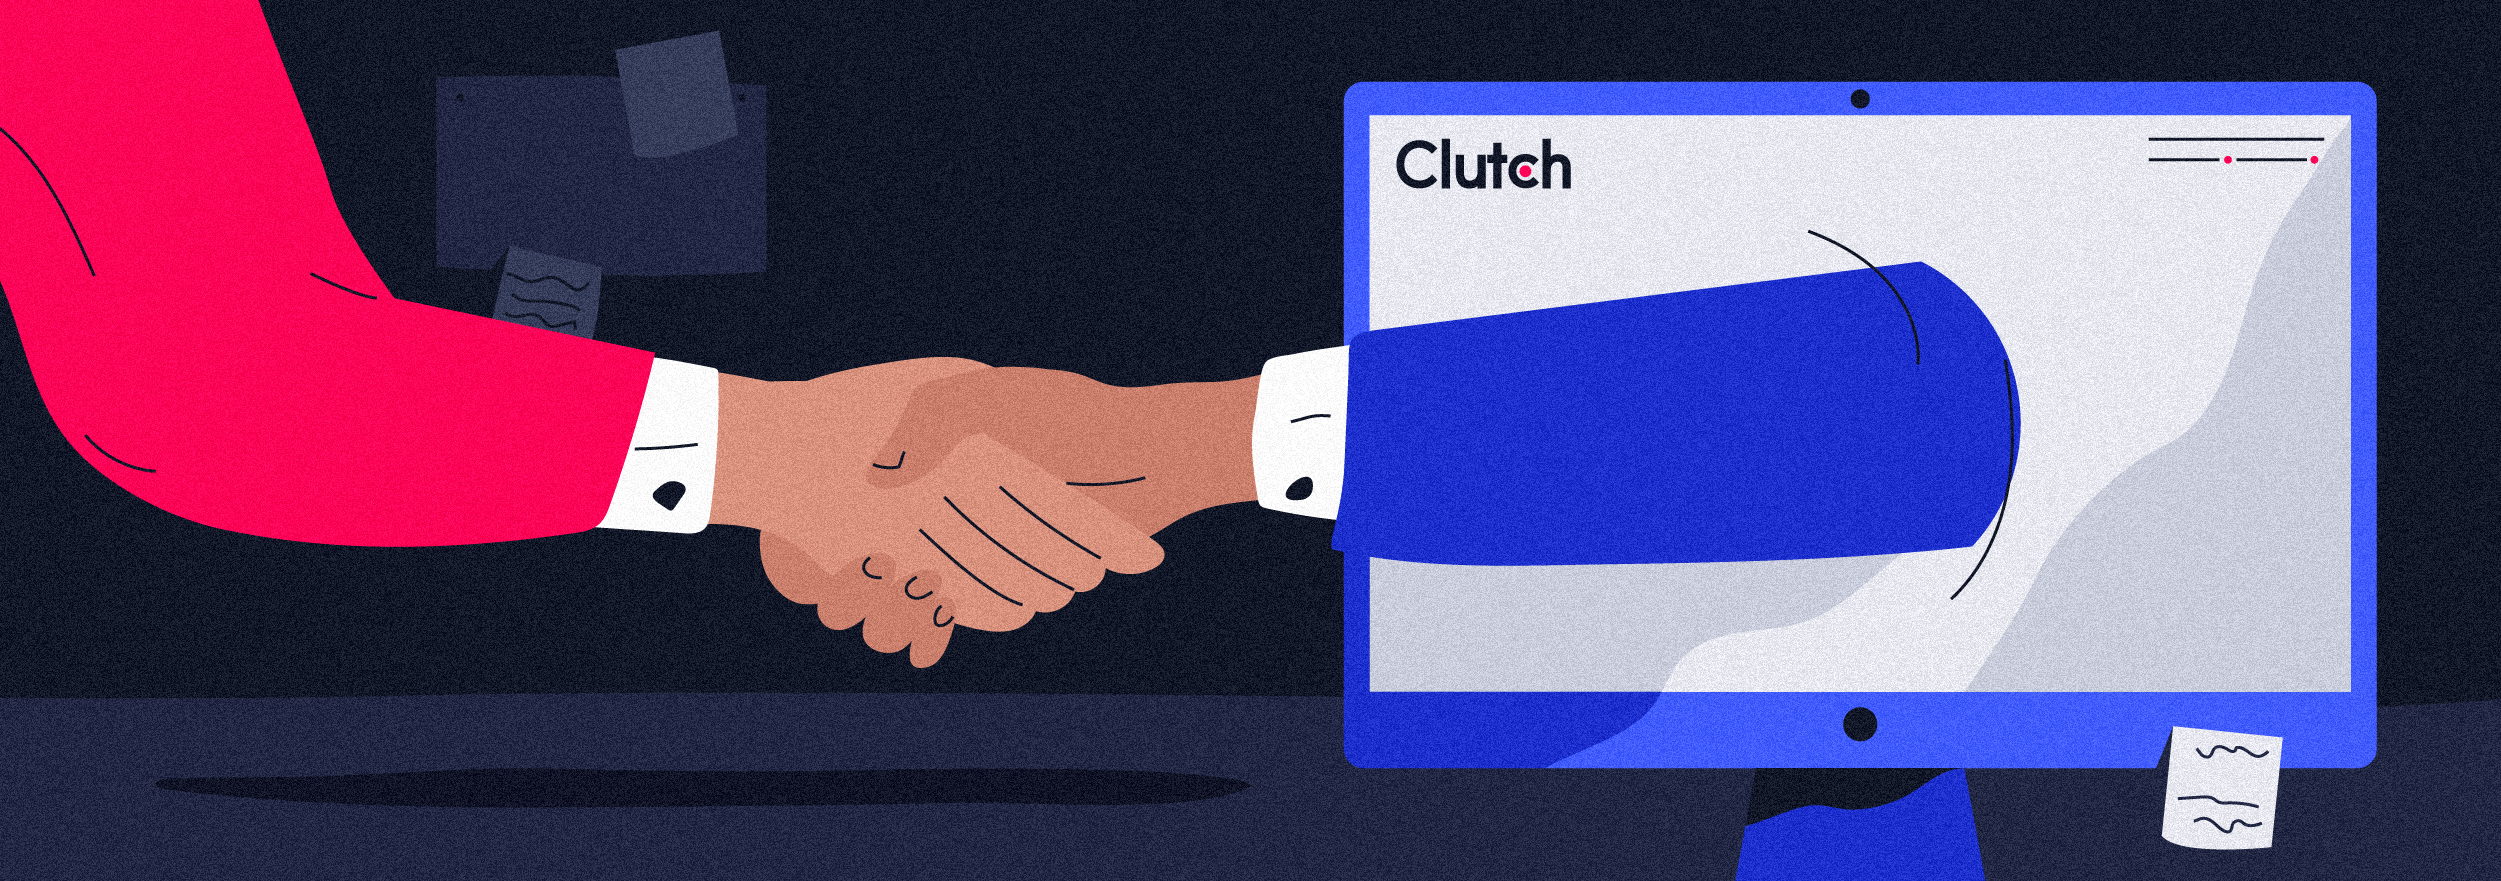 Clutch.co: make the best business buying decisions ever